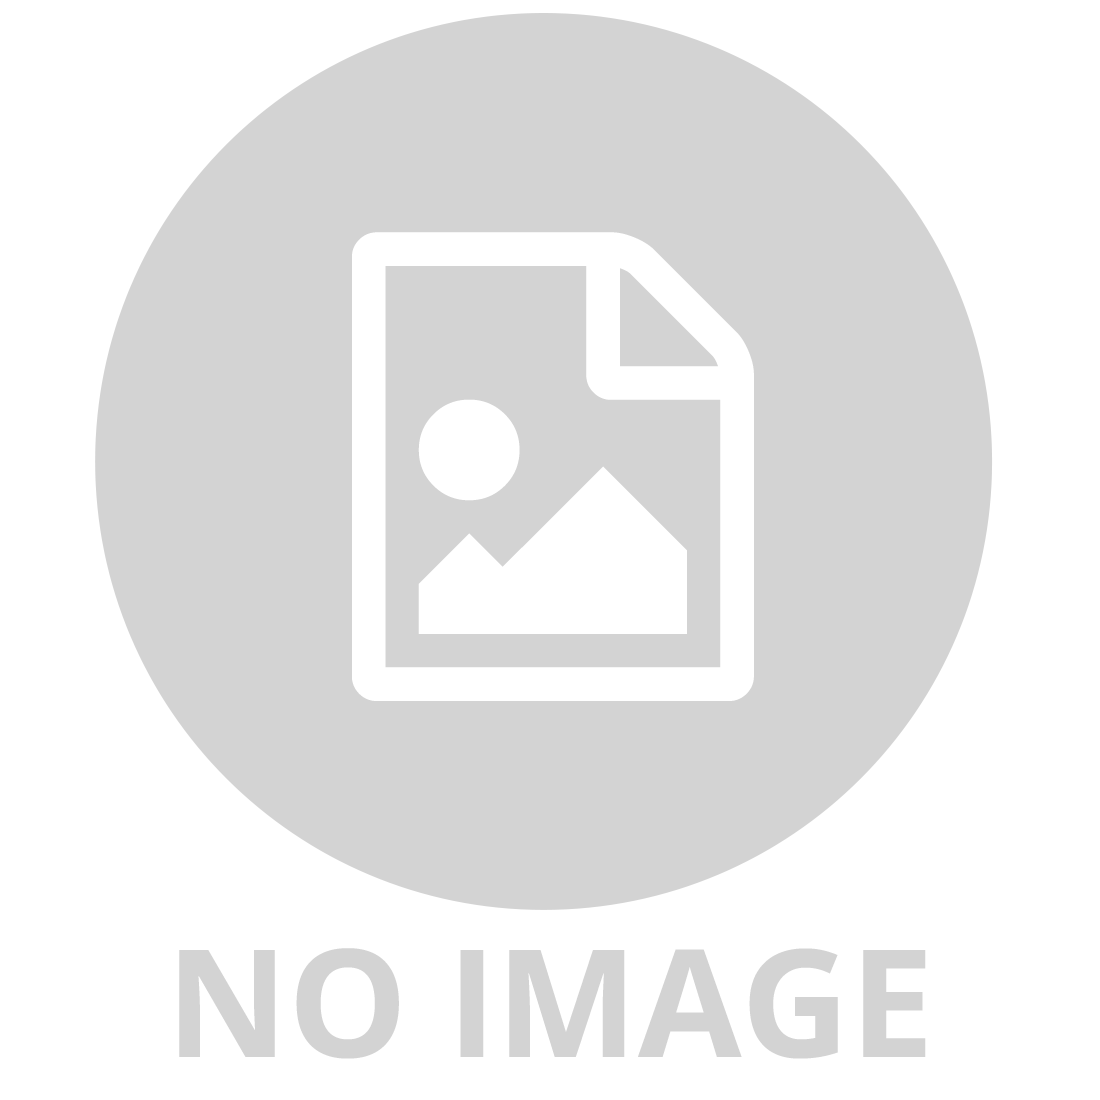 ADRENALIN BARREL SURFER SKATEBOARD